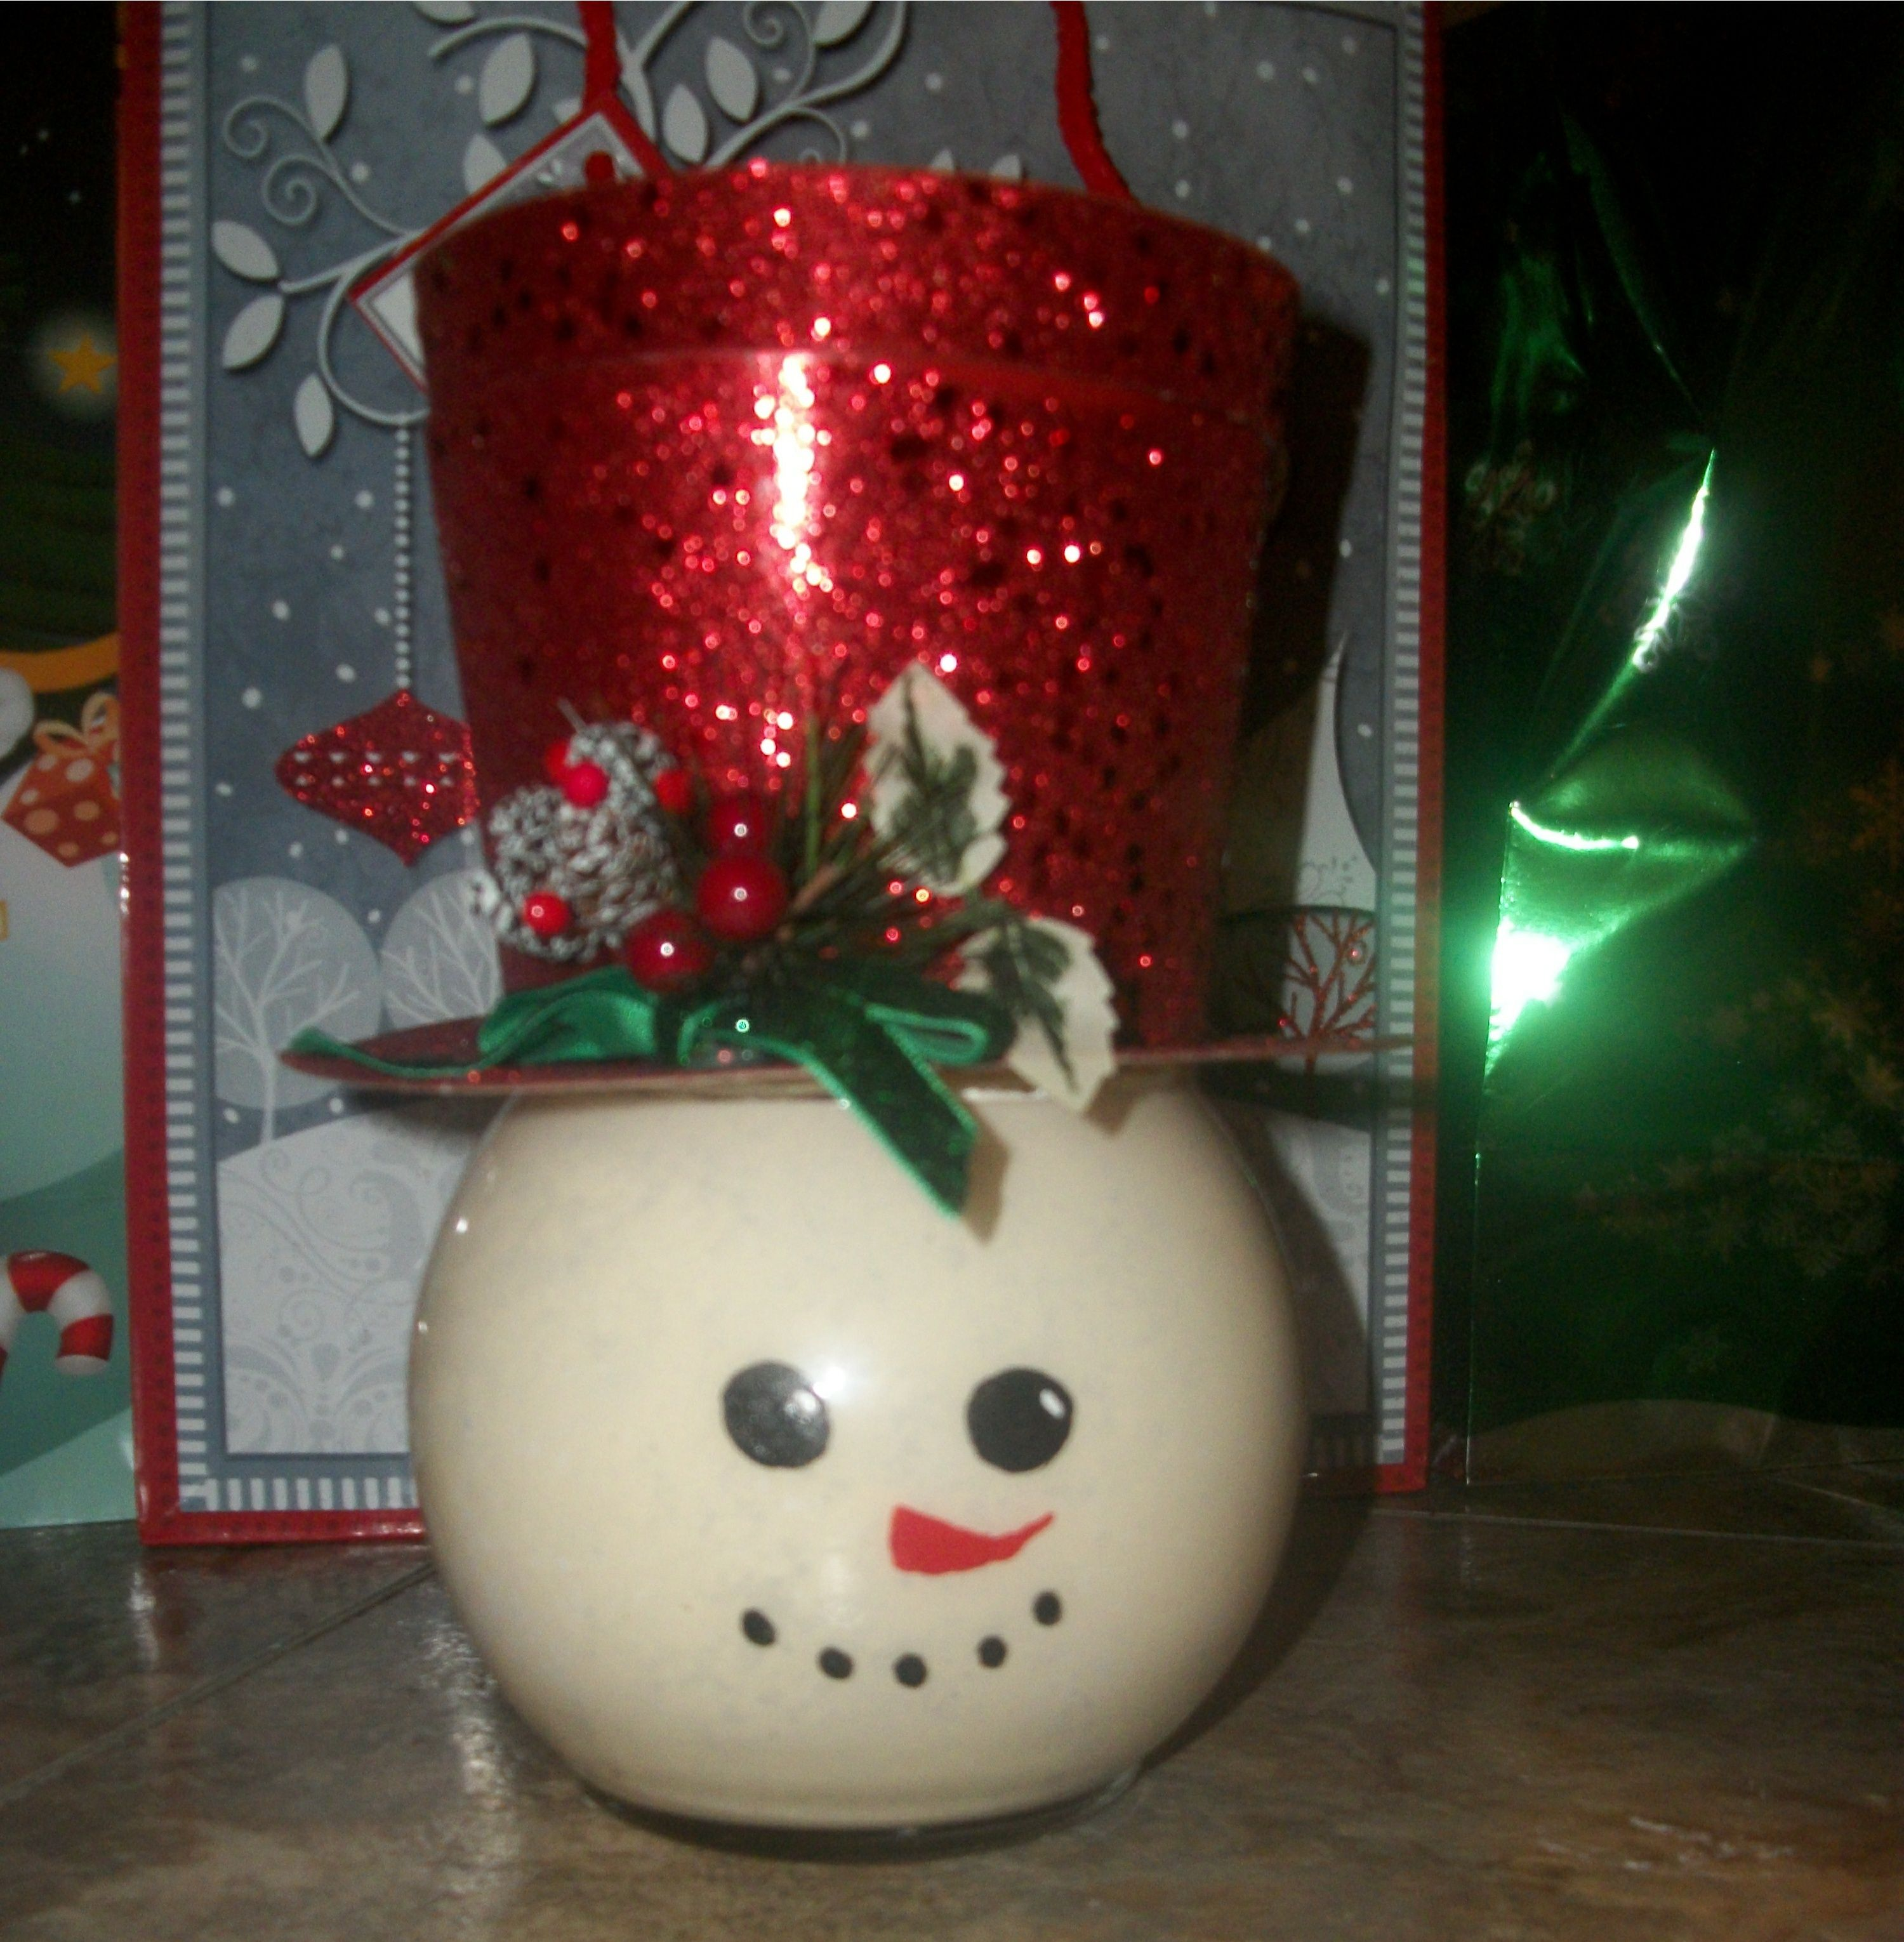 Dollar Tree jar with a candy holder hat decoration